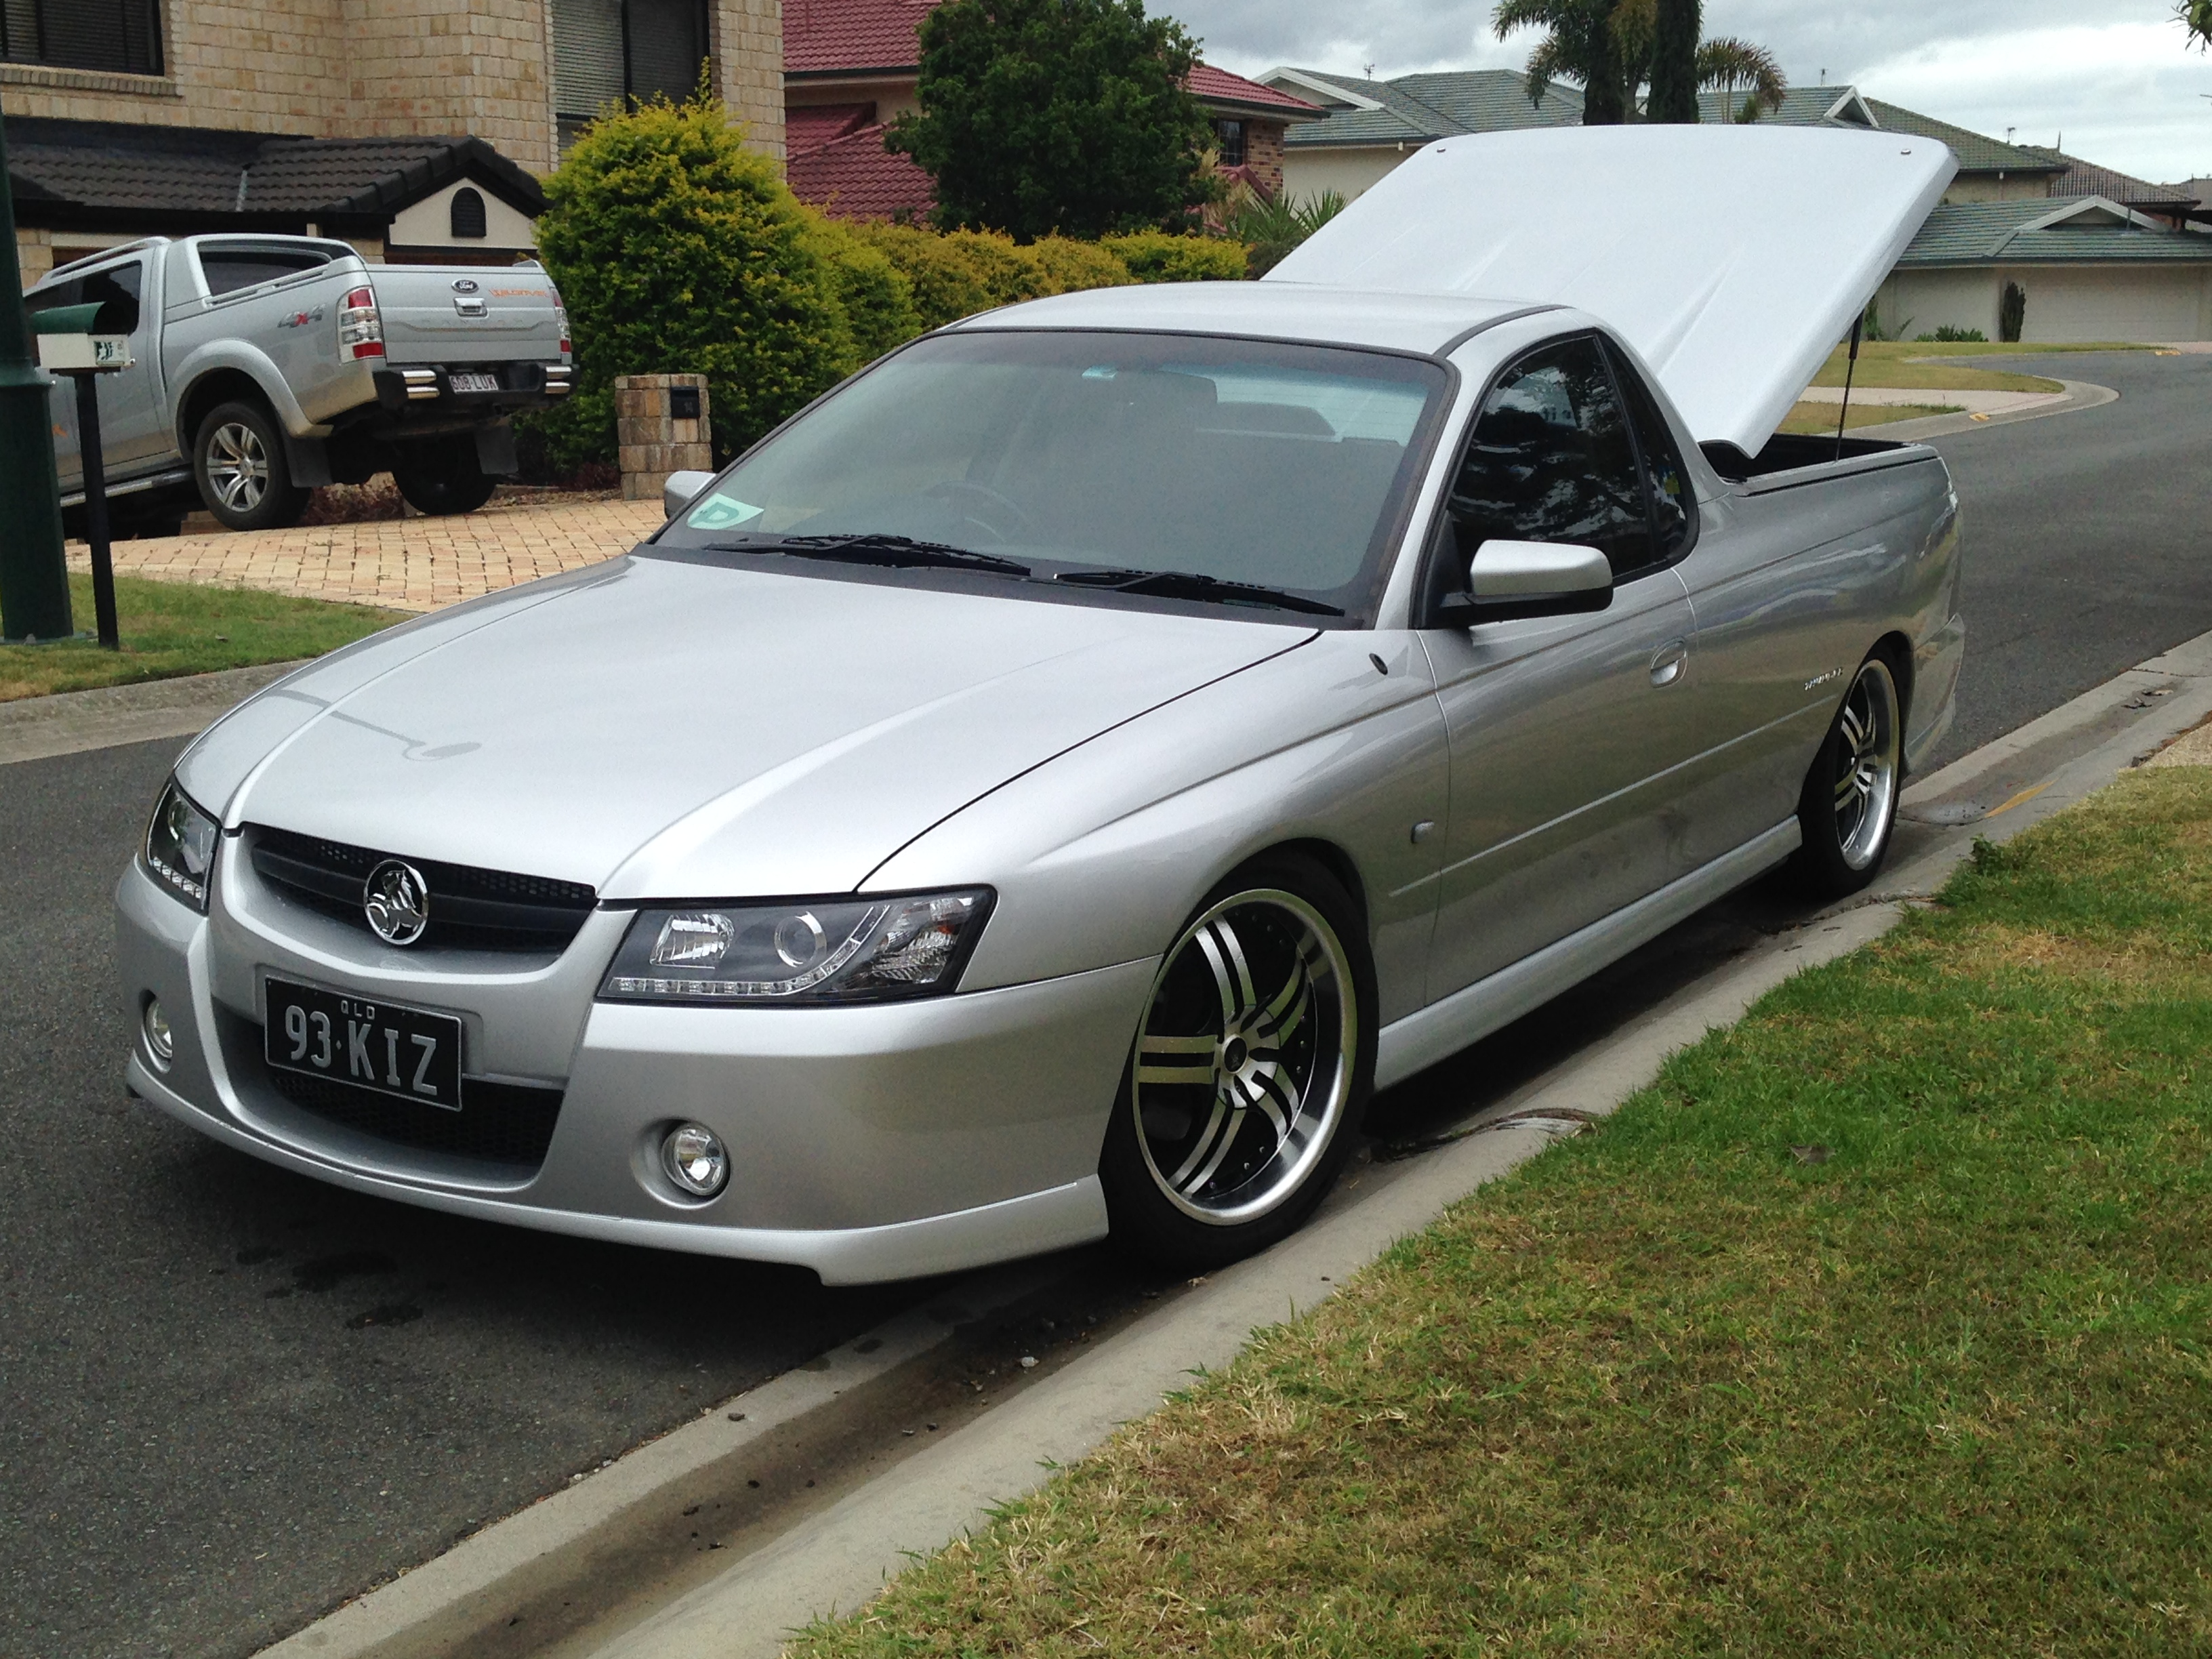 holden vz commodore workshop manual free download